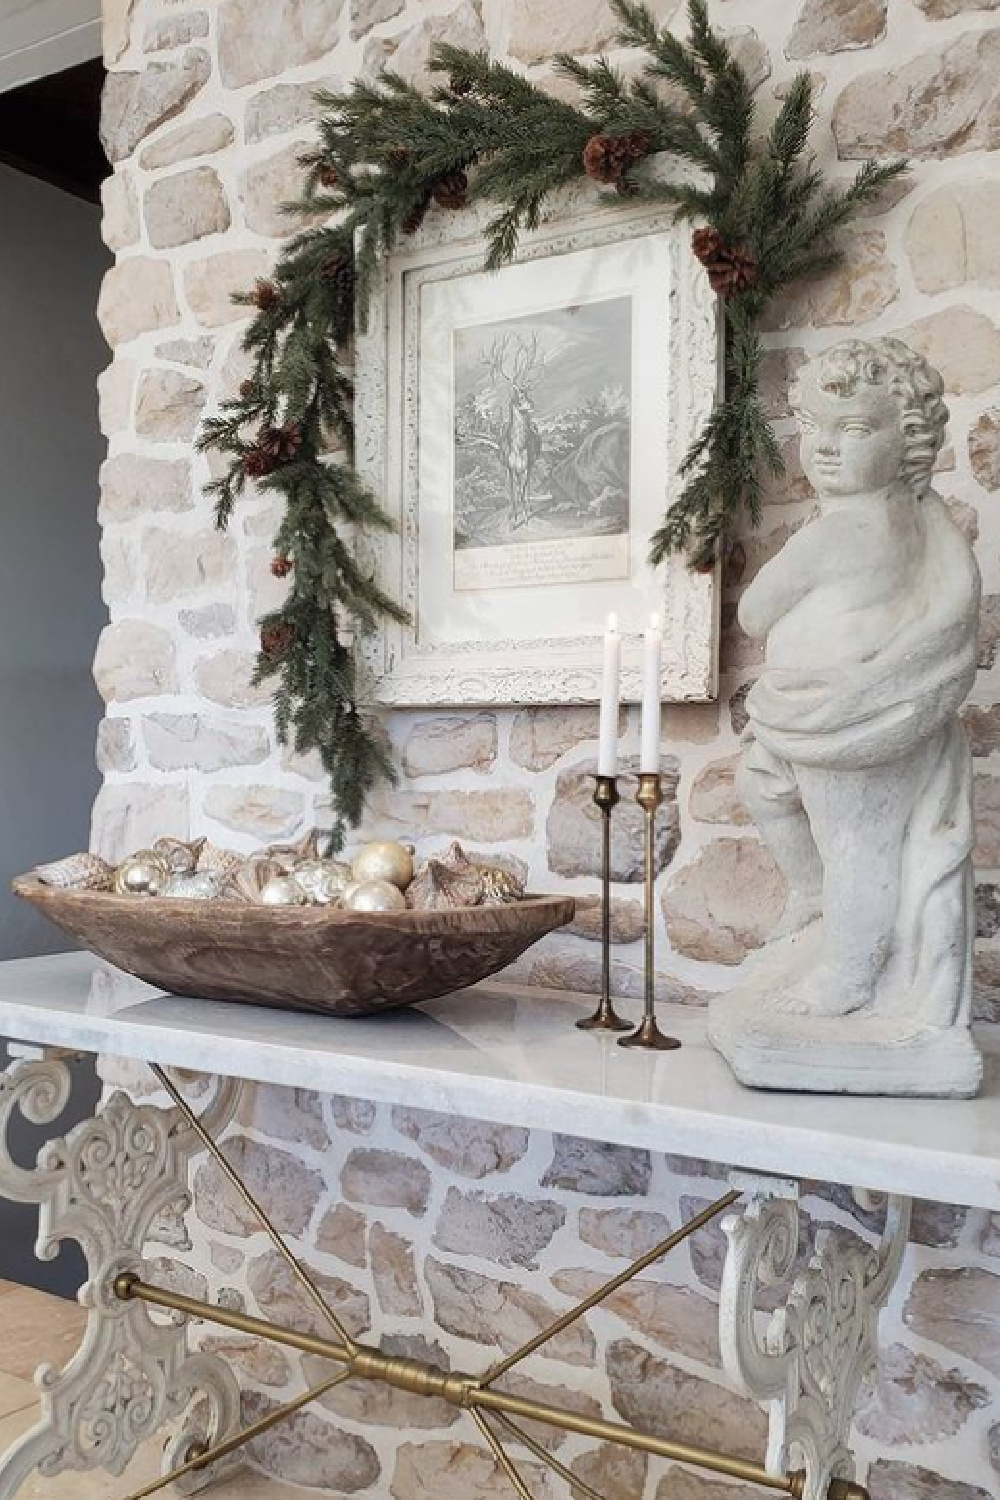 White French country Christmas decor with rustic stone, dough bowl with ornaments and cherub - The French Nest Co Interior Design.